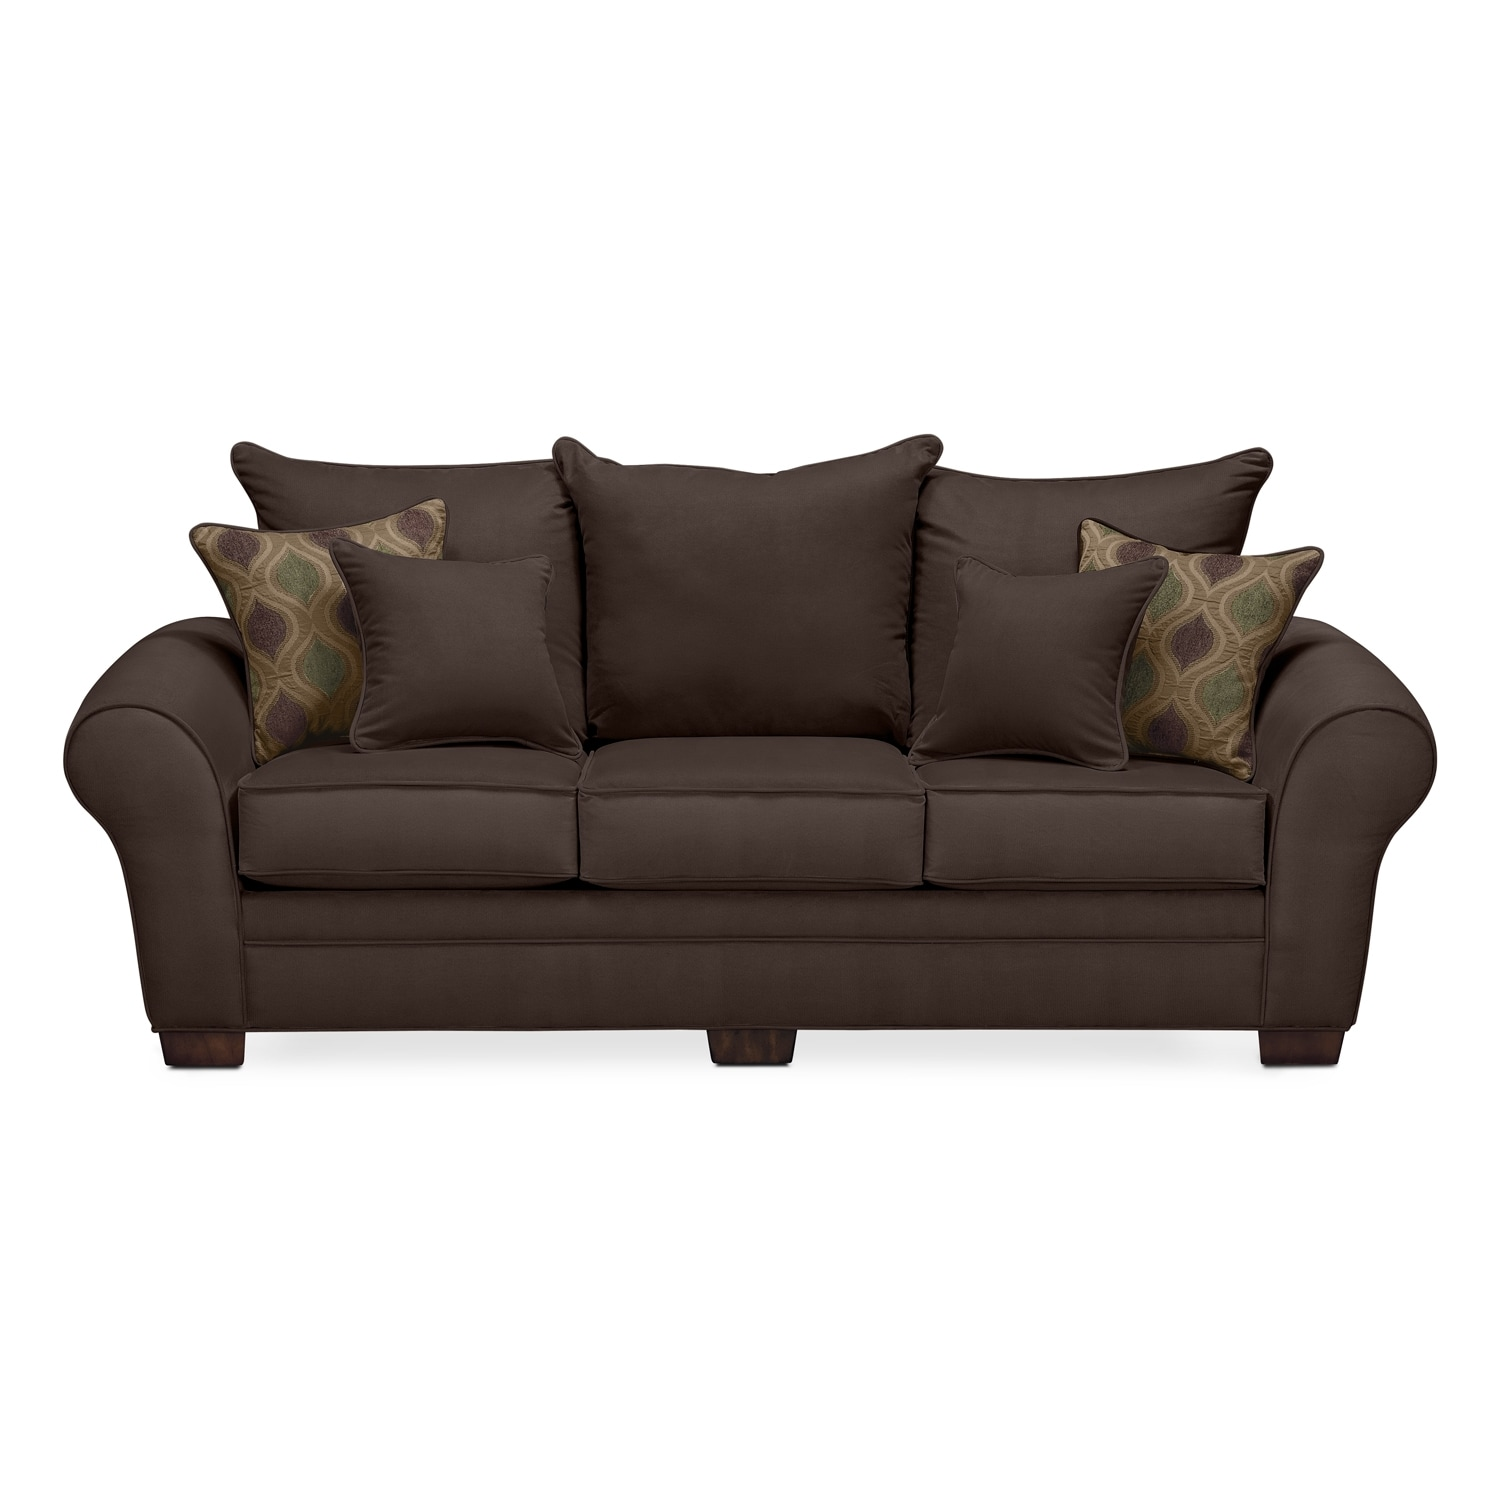 rendezvous sofa chocolate value city furniture. Black Bedroom Furniture Sets. Home Design Ideas